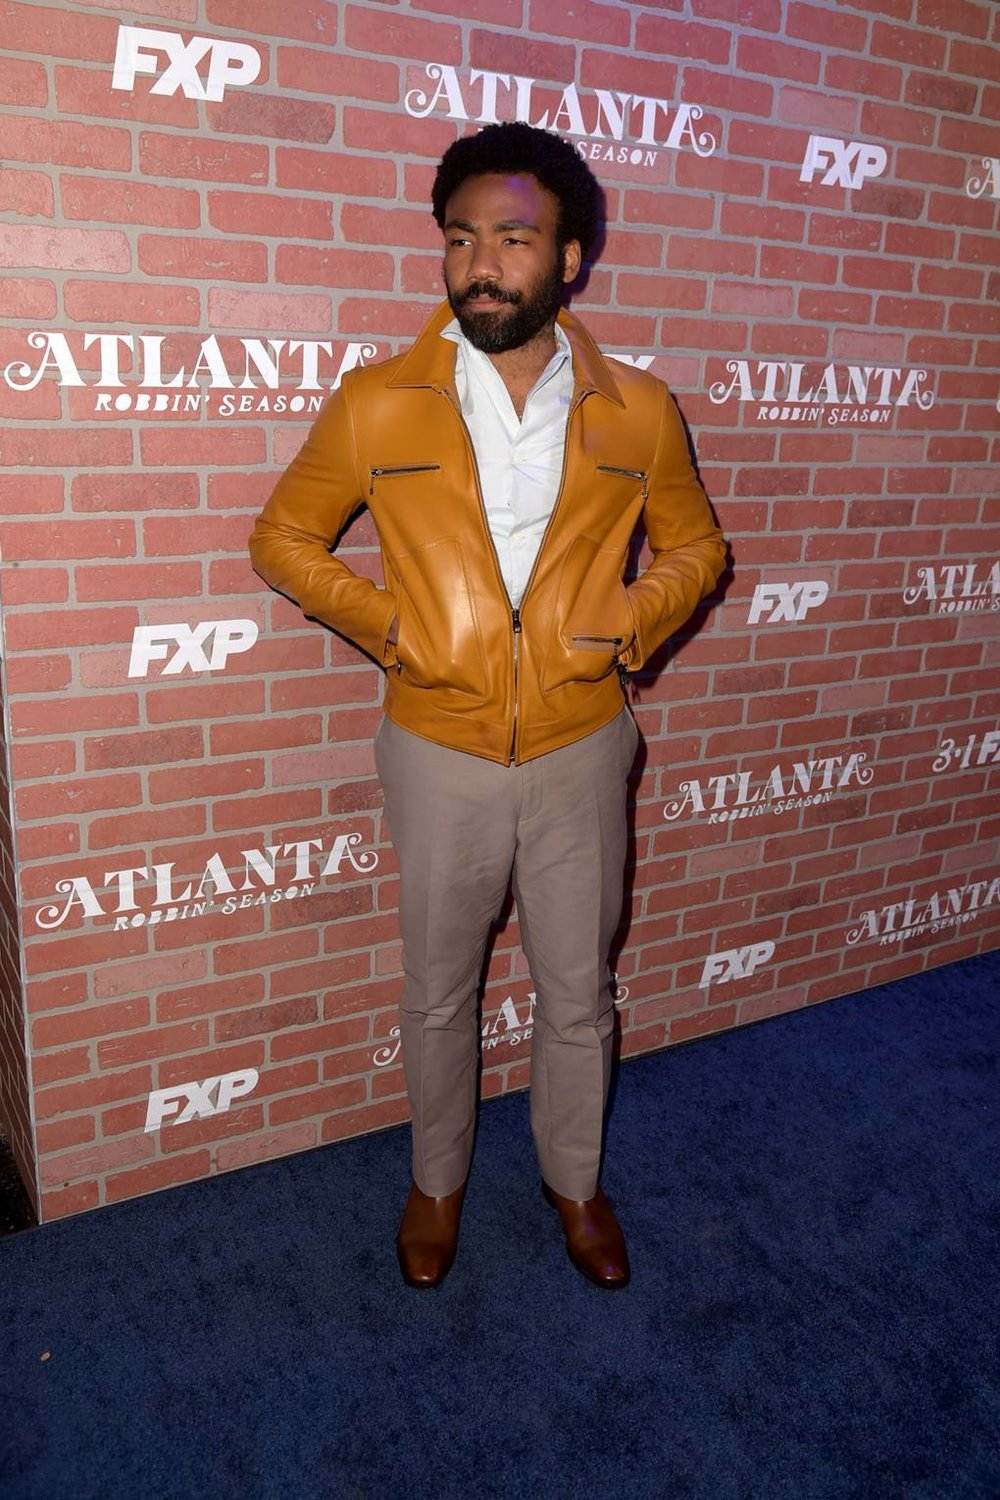 Channeling the 70s at the series premiere of 'Atlanta' season 2   Image Credit